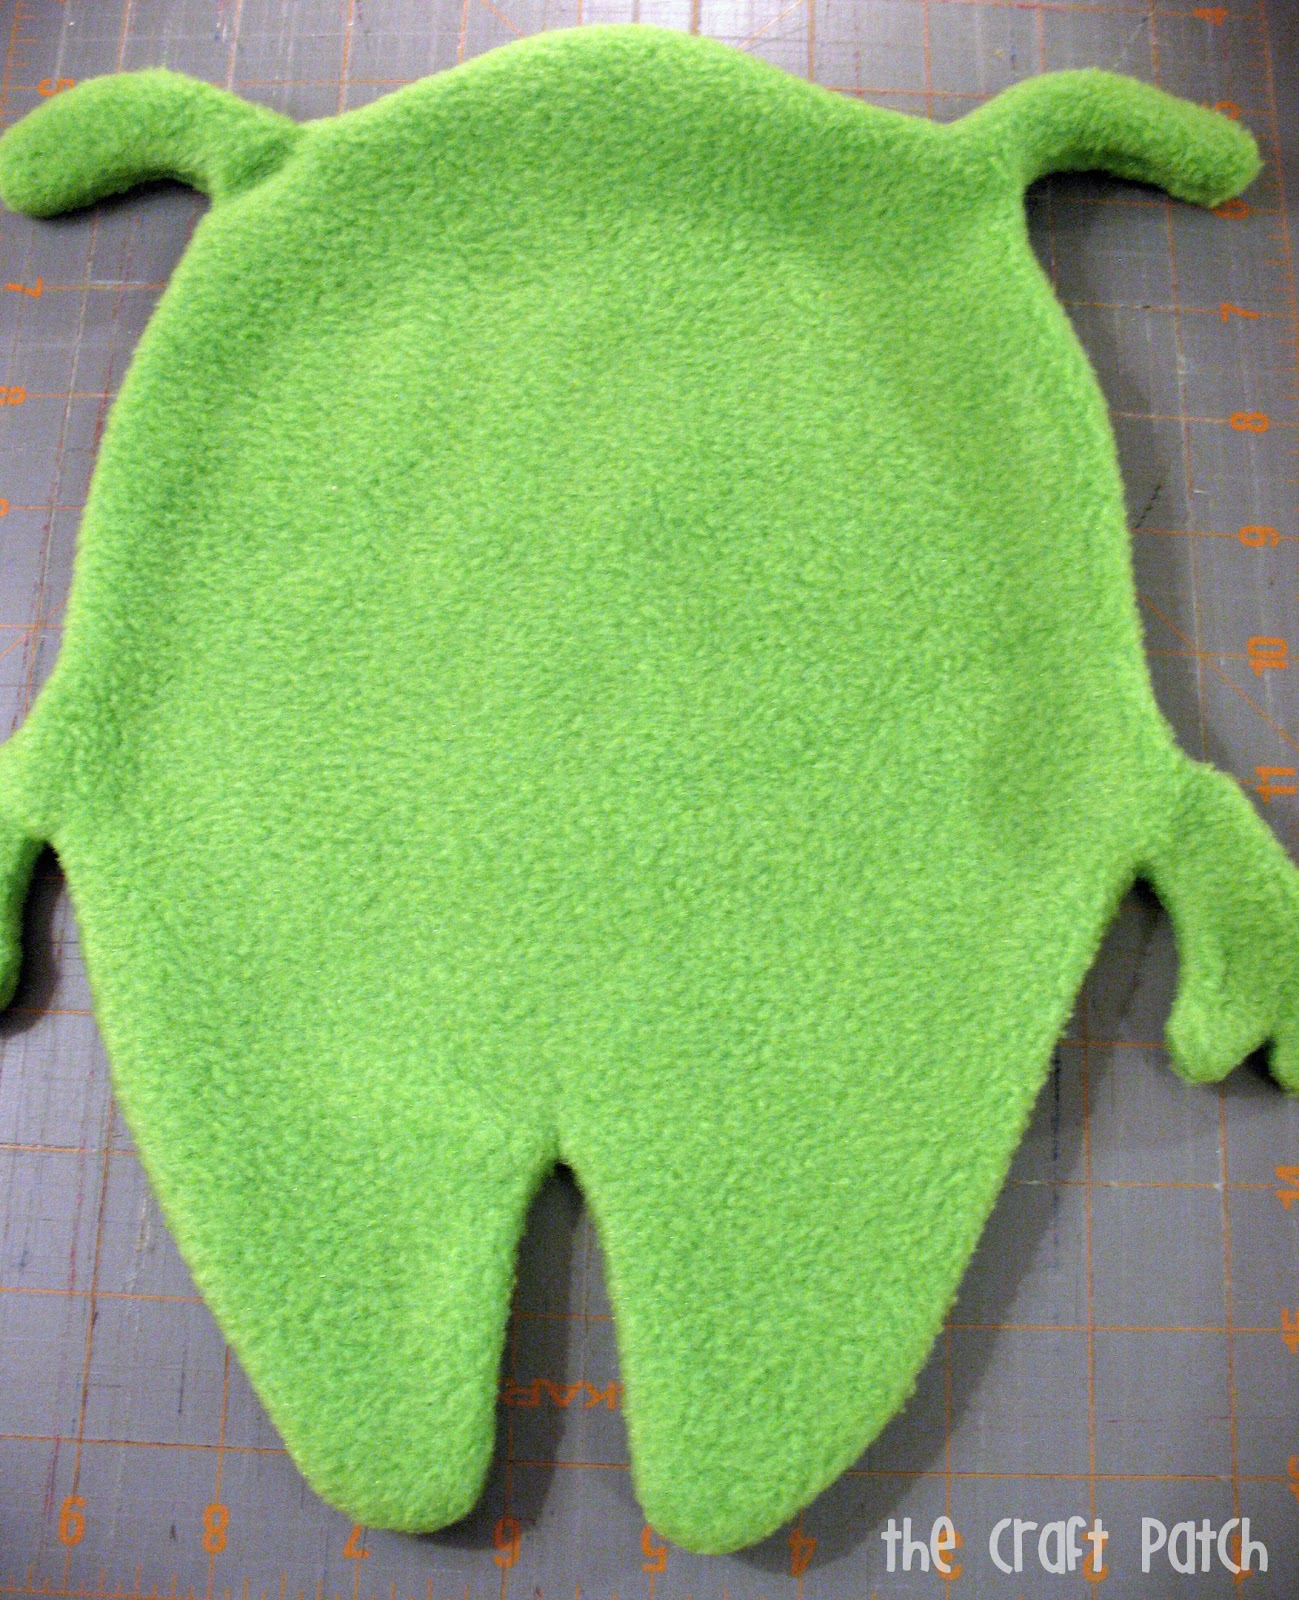 The Craft Patch Diy Ugly Dolls Tutorial